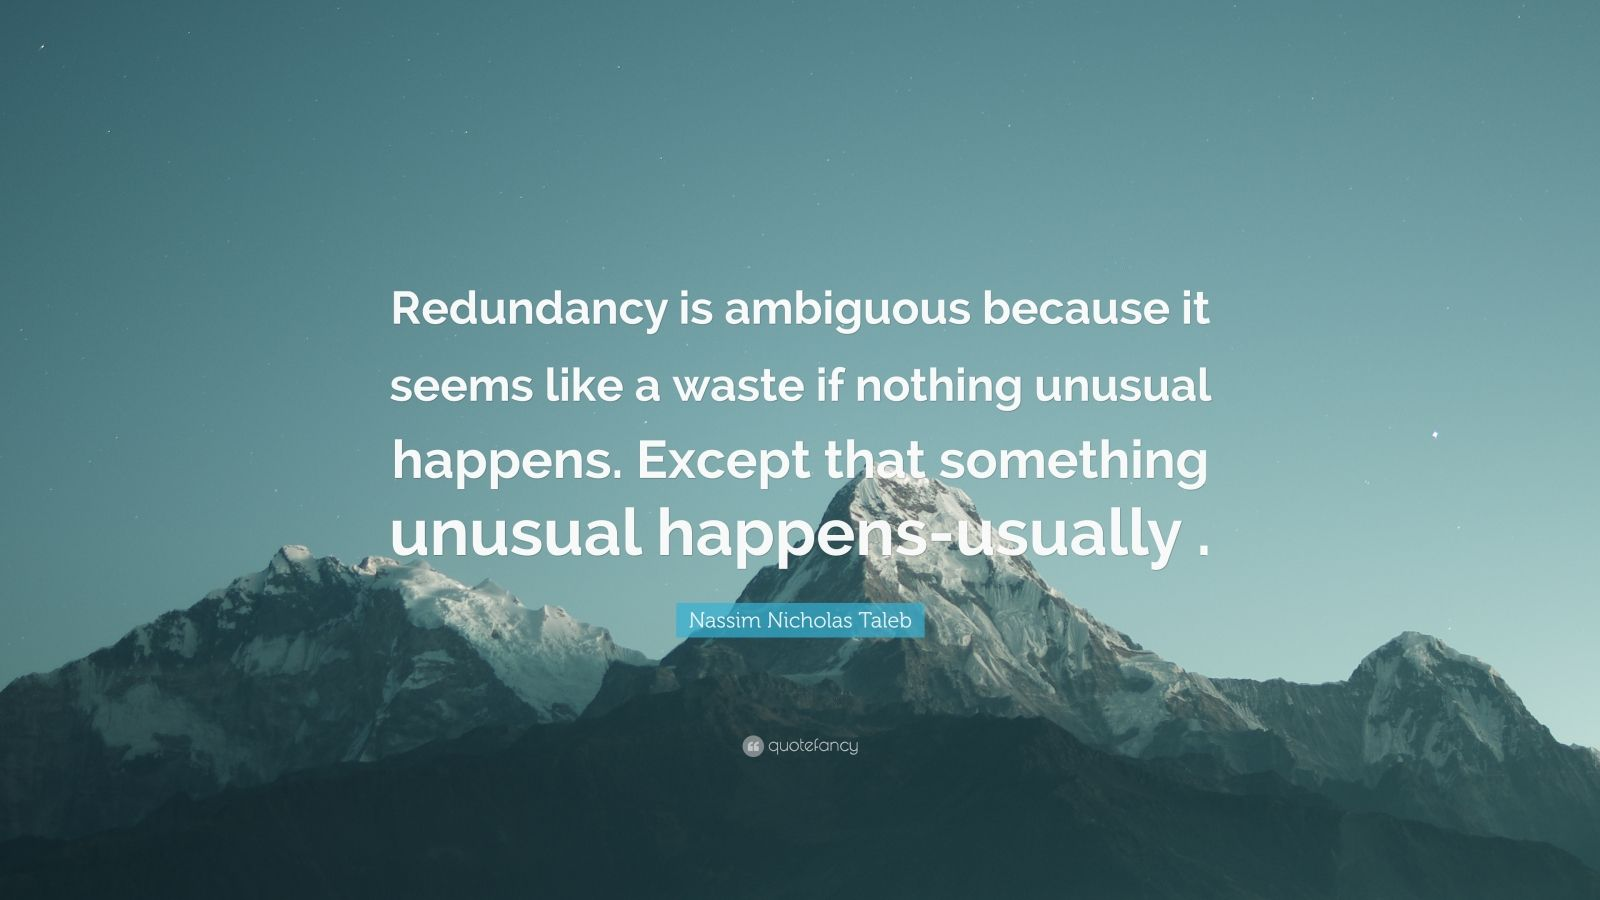 """Nassim Nicholas Taleb Quote: """"Redundancy is ambiguous because it seems like a waste if nothing unusual happens. Except that something unusual happens-usually ."""""""